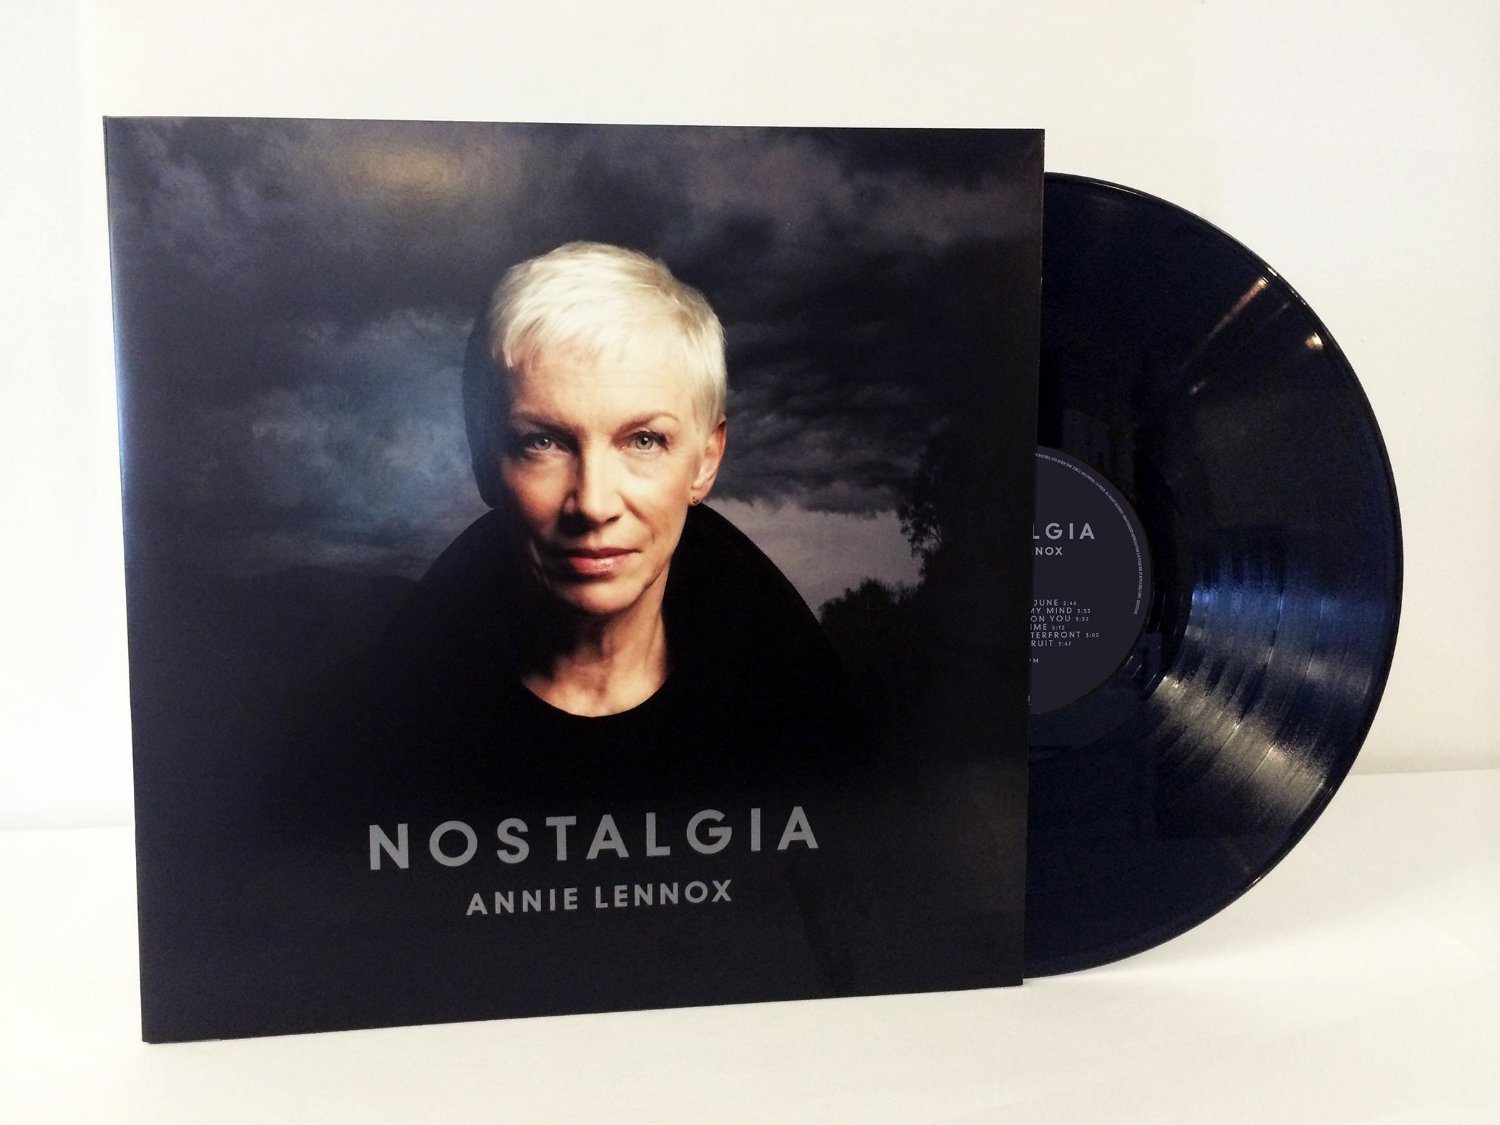 Nostalgia – The new album from Annie Lennox is now on worldwide release